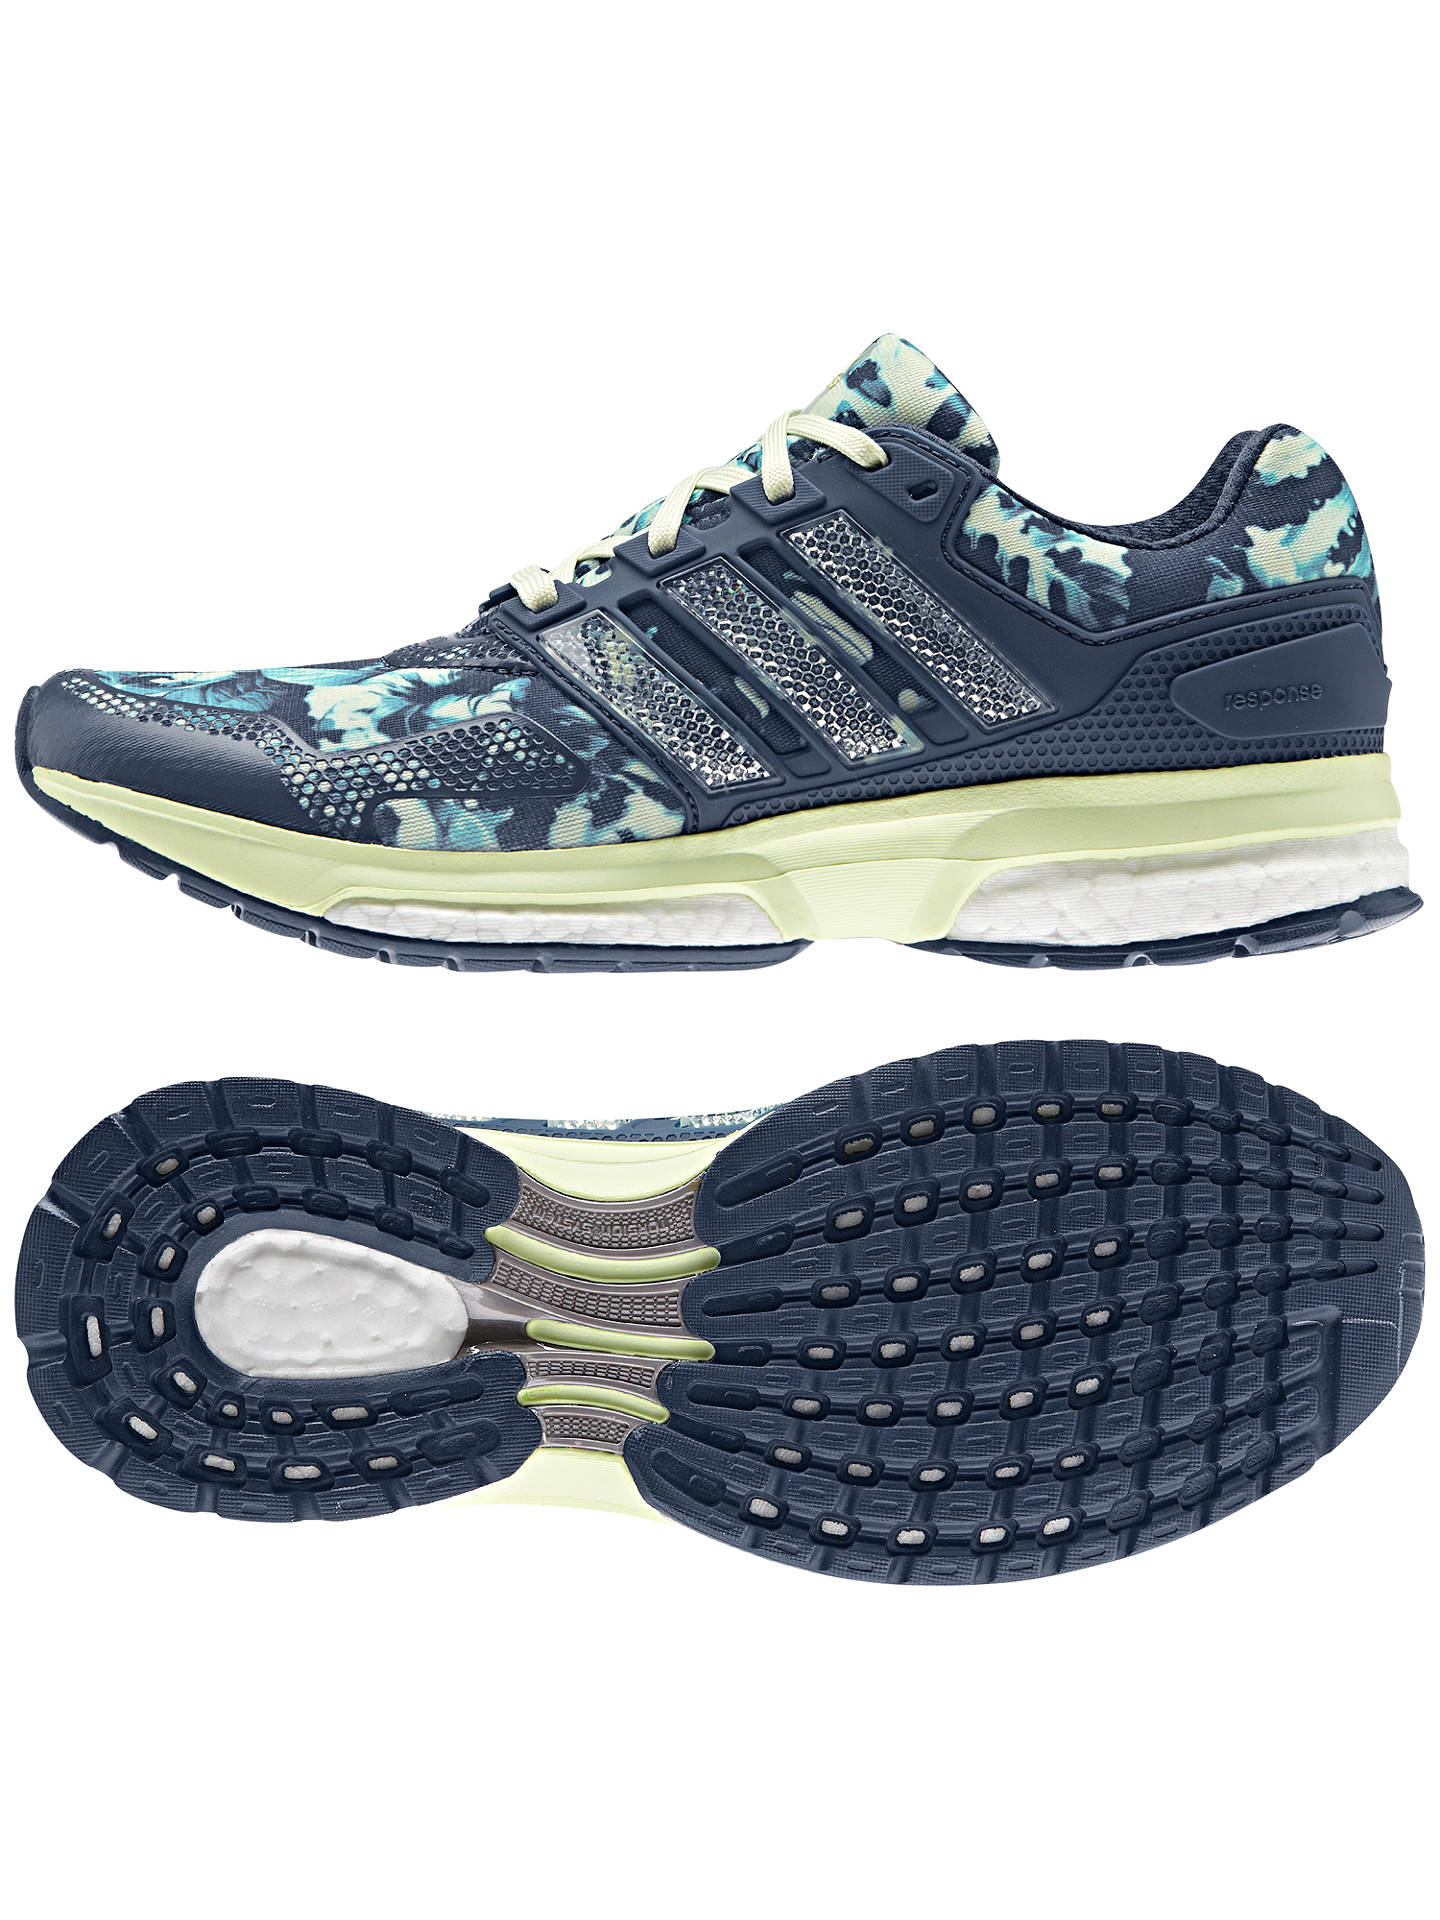 Adidas Response 2 Graphic Women's Running Shoes, Blue at